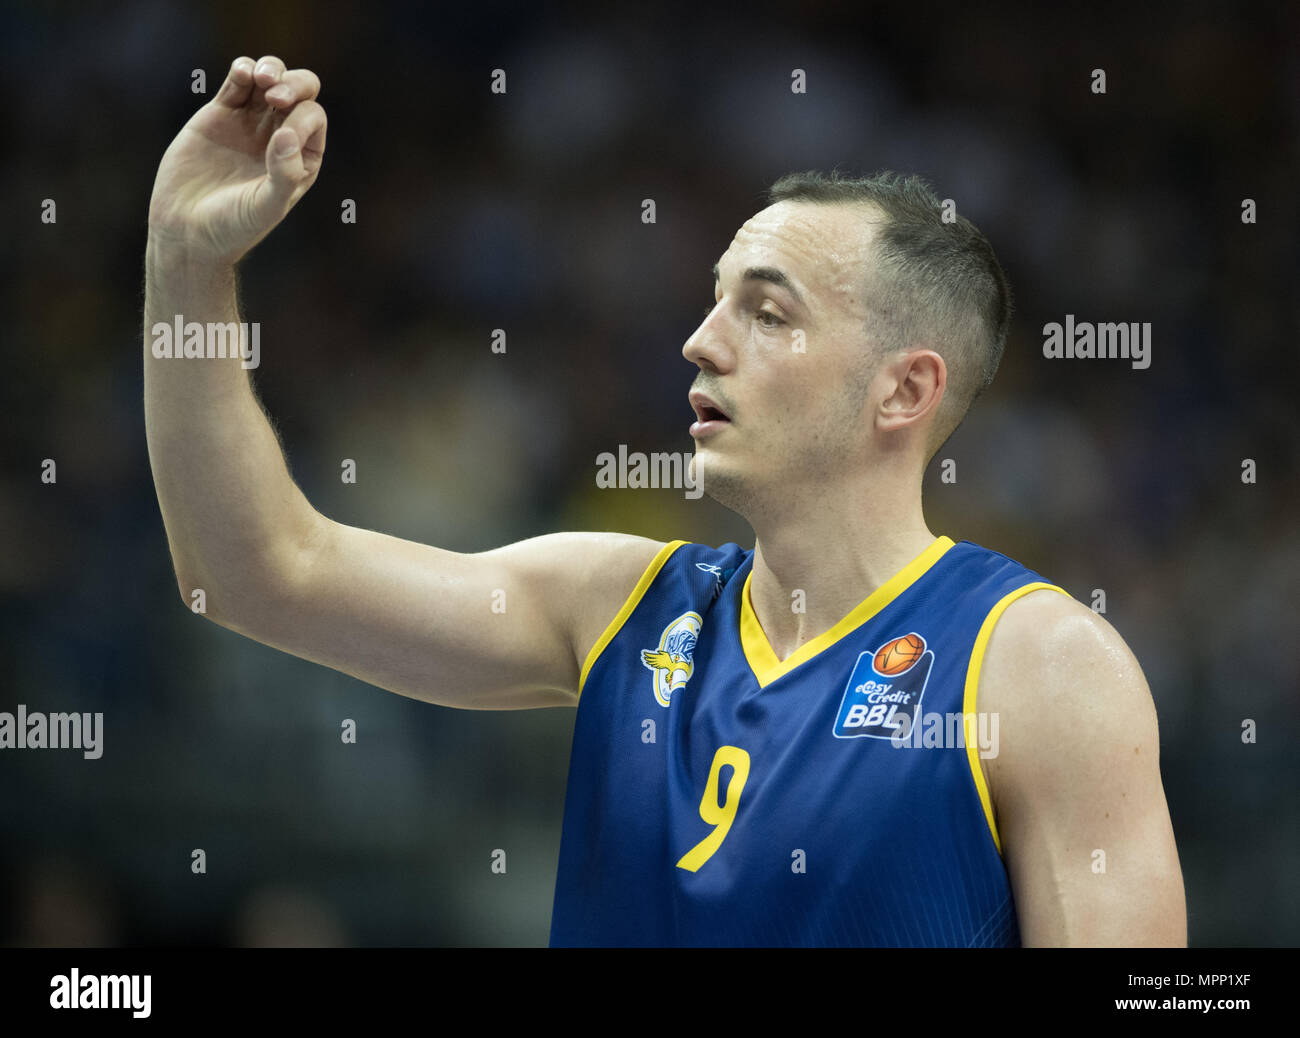 17 May 2018, Germany, Berlin: Bundesliga, quarter-final, ALBA Berlin vs. EWE Baskets Oldenburg in the Mercedes-Benz arena. Oldenburg's Karsten Tadda. Photo: Soeren Stache/dpa - Stock Image